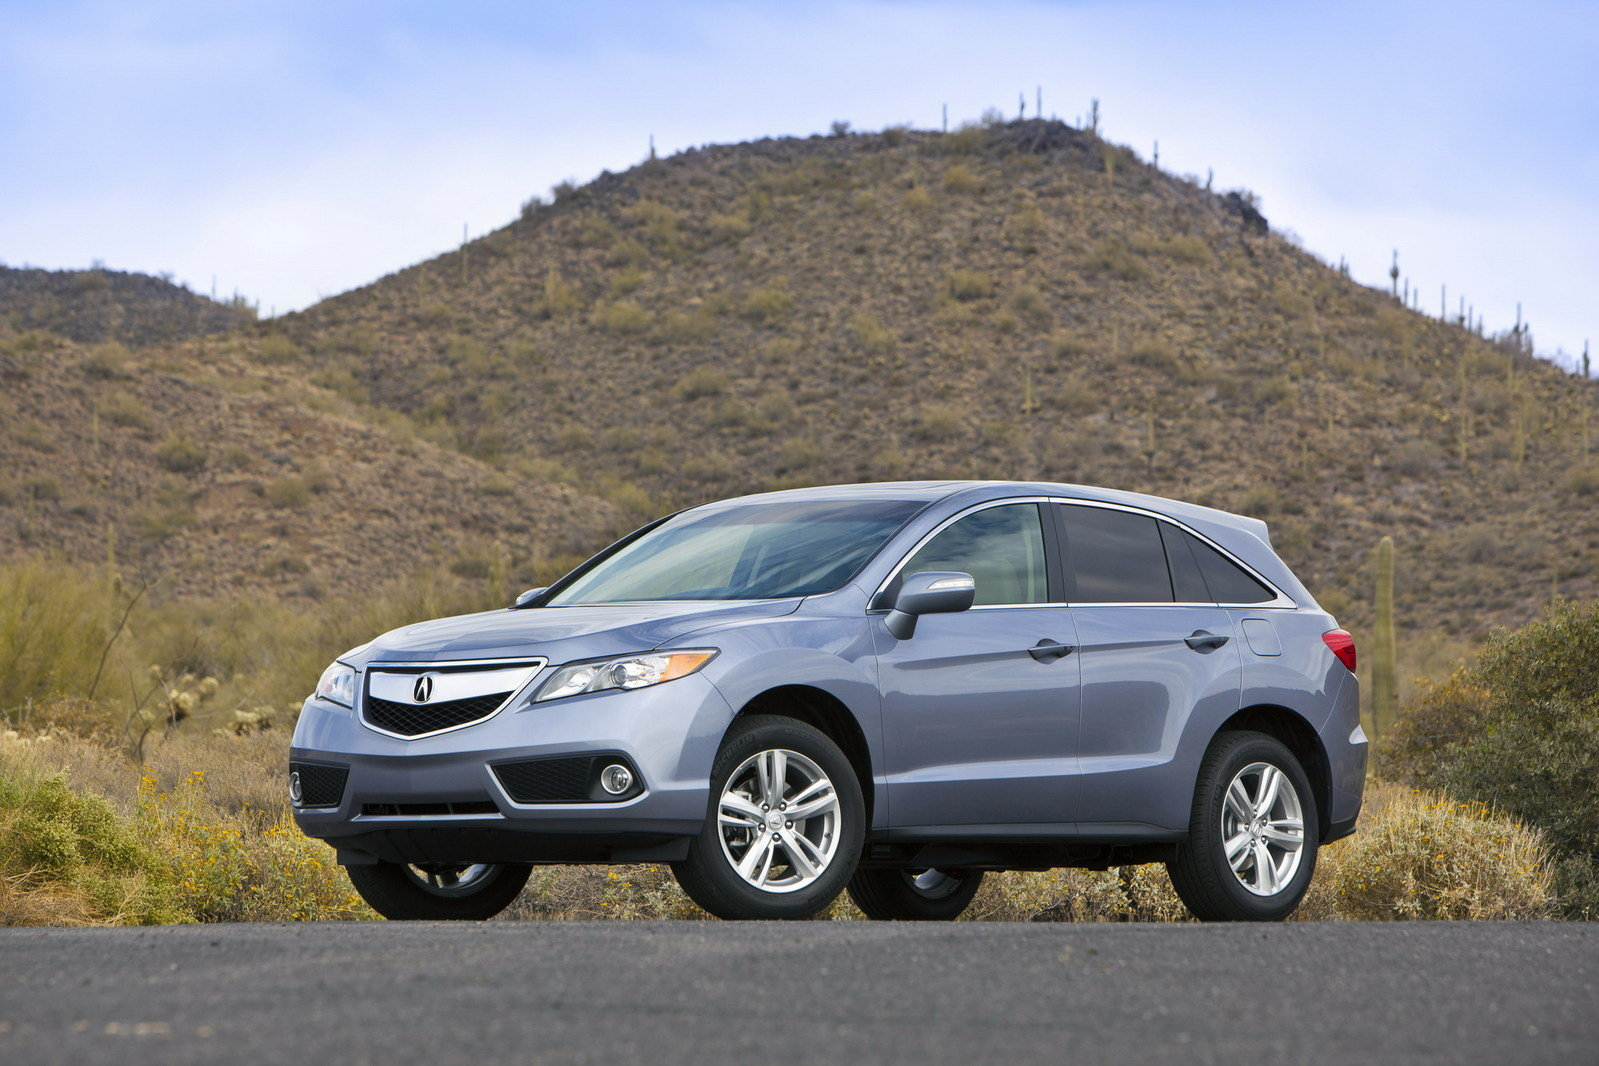 2013 2014 acura rdx picture 463712 car review top speed. Black Bedroom Furniture Sets. Home Design Ideas